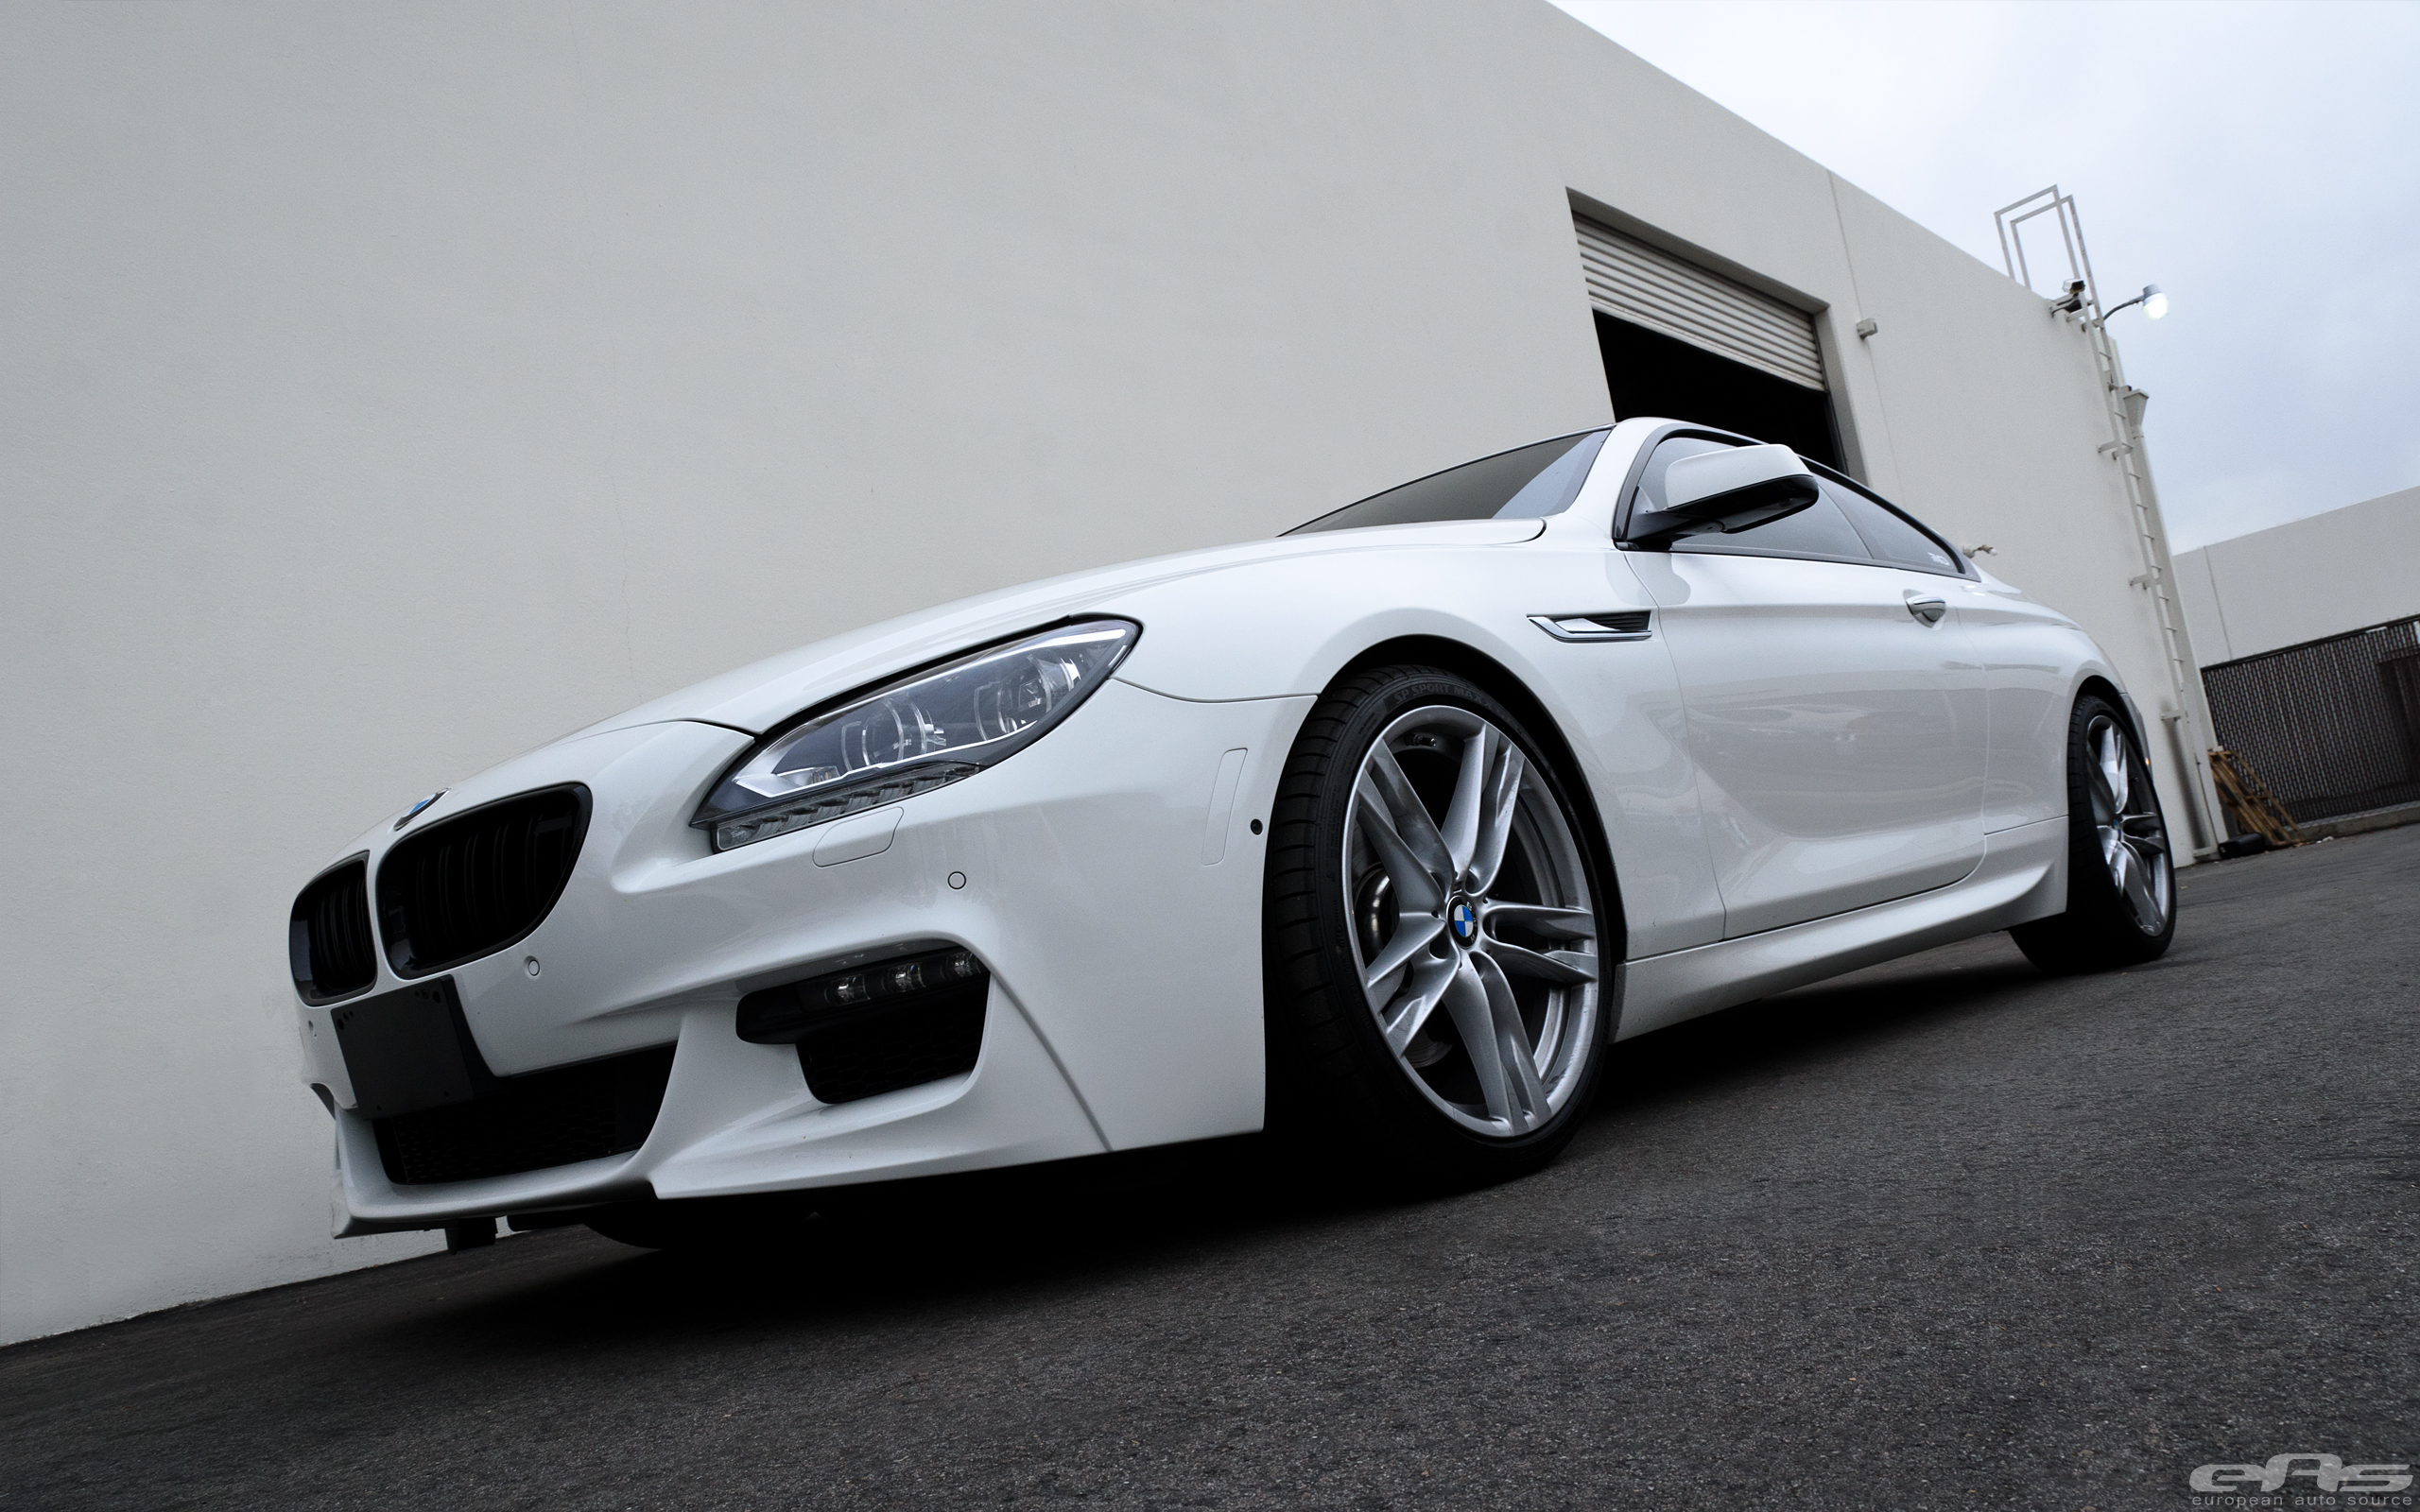 Alpine White Bmw 650i Coupe Gets Some Exterior Upgrades